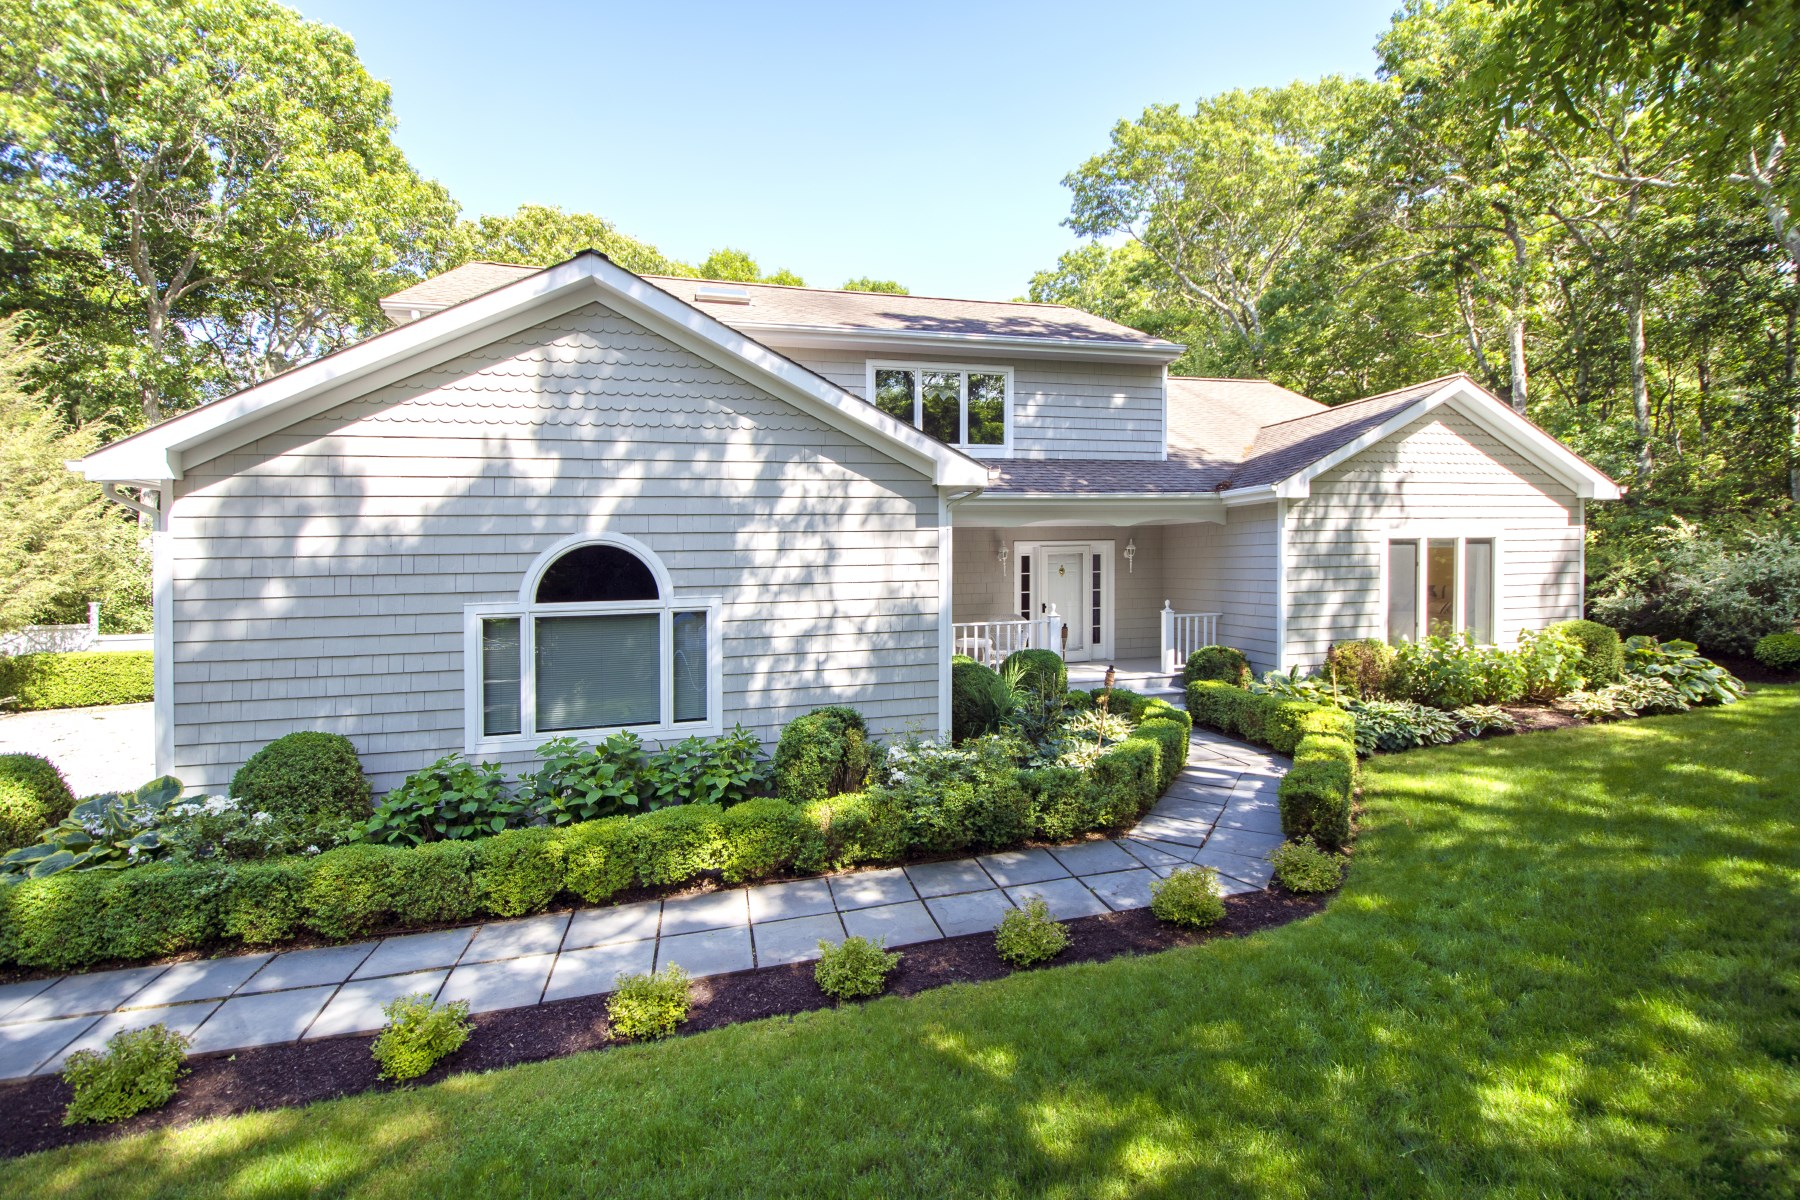 Single Family Home for Sale at First Rate Home with Pool in Northside 114 Northside Drive Sag Harbor, New York, 11963 United States